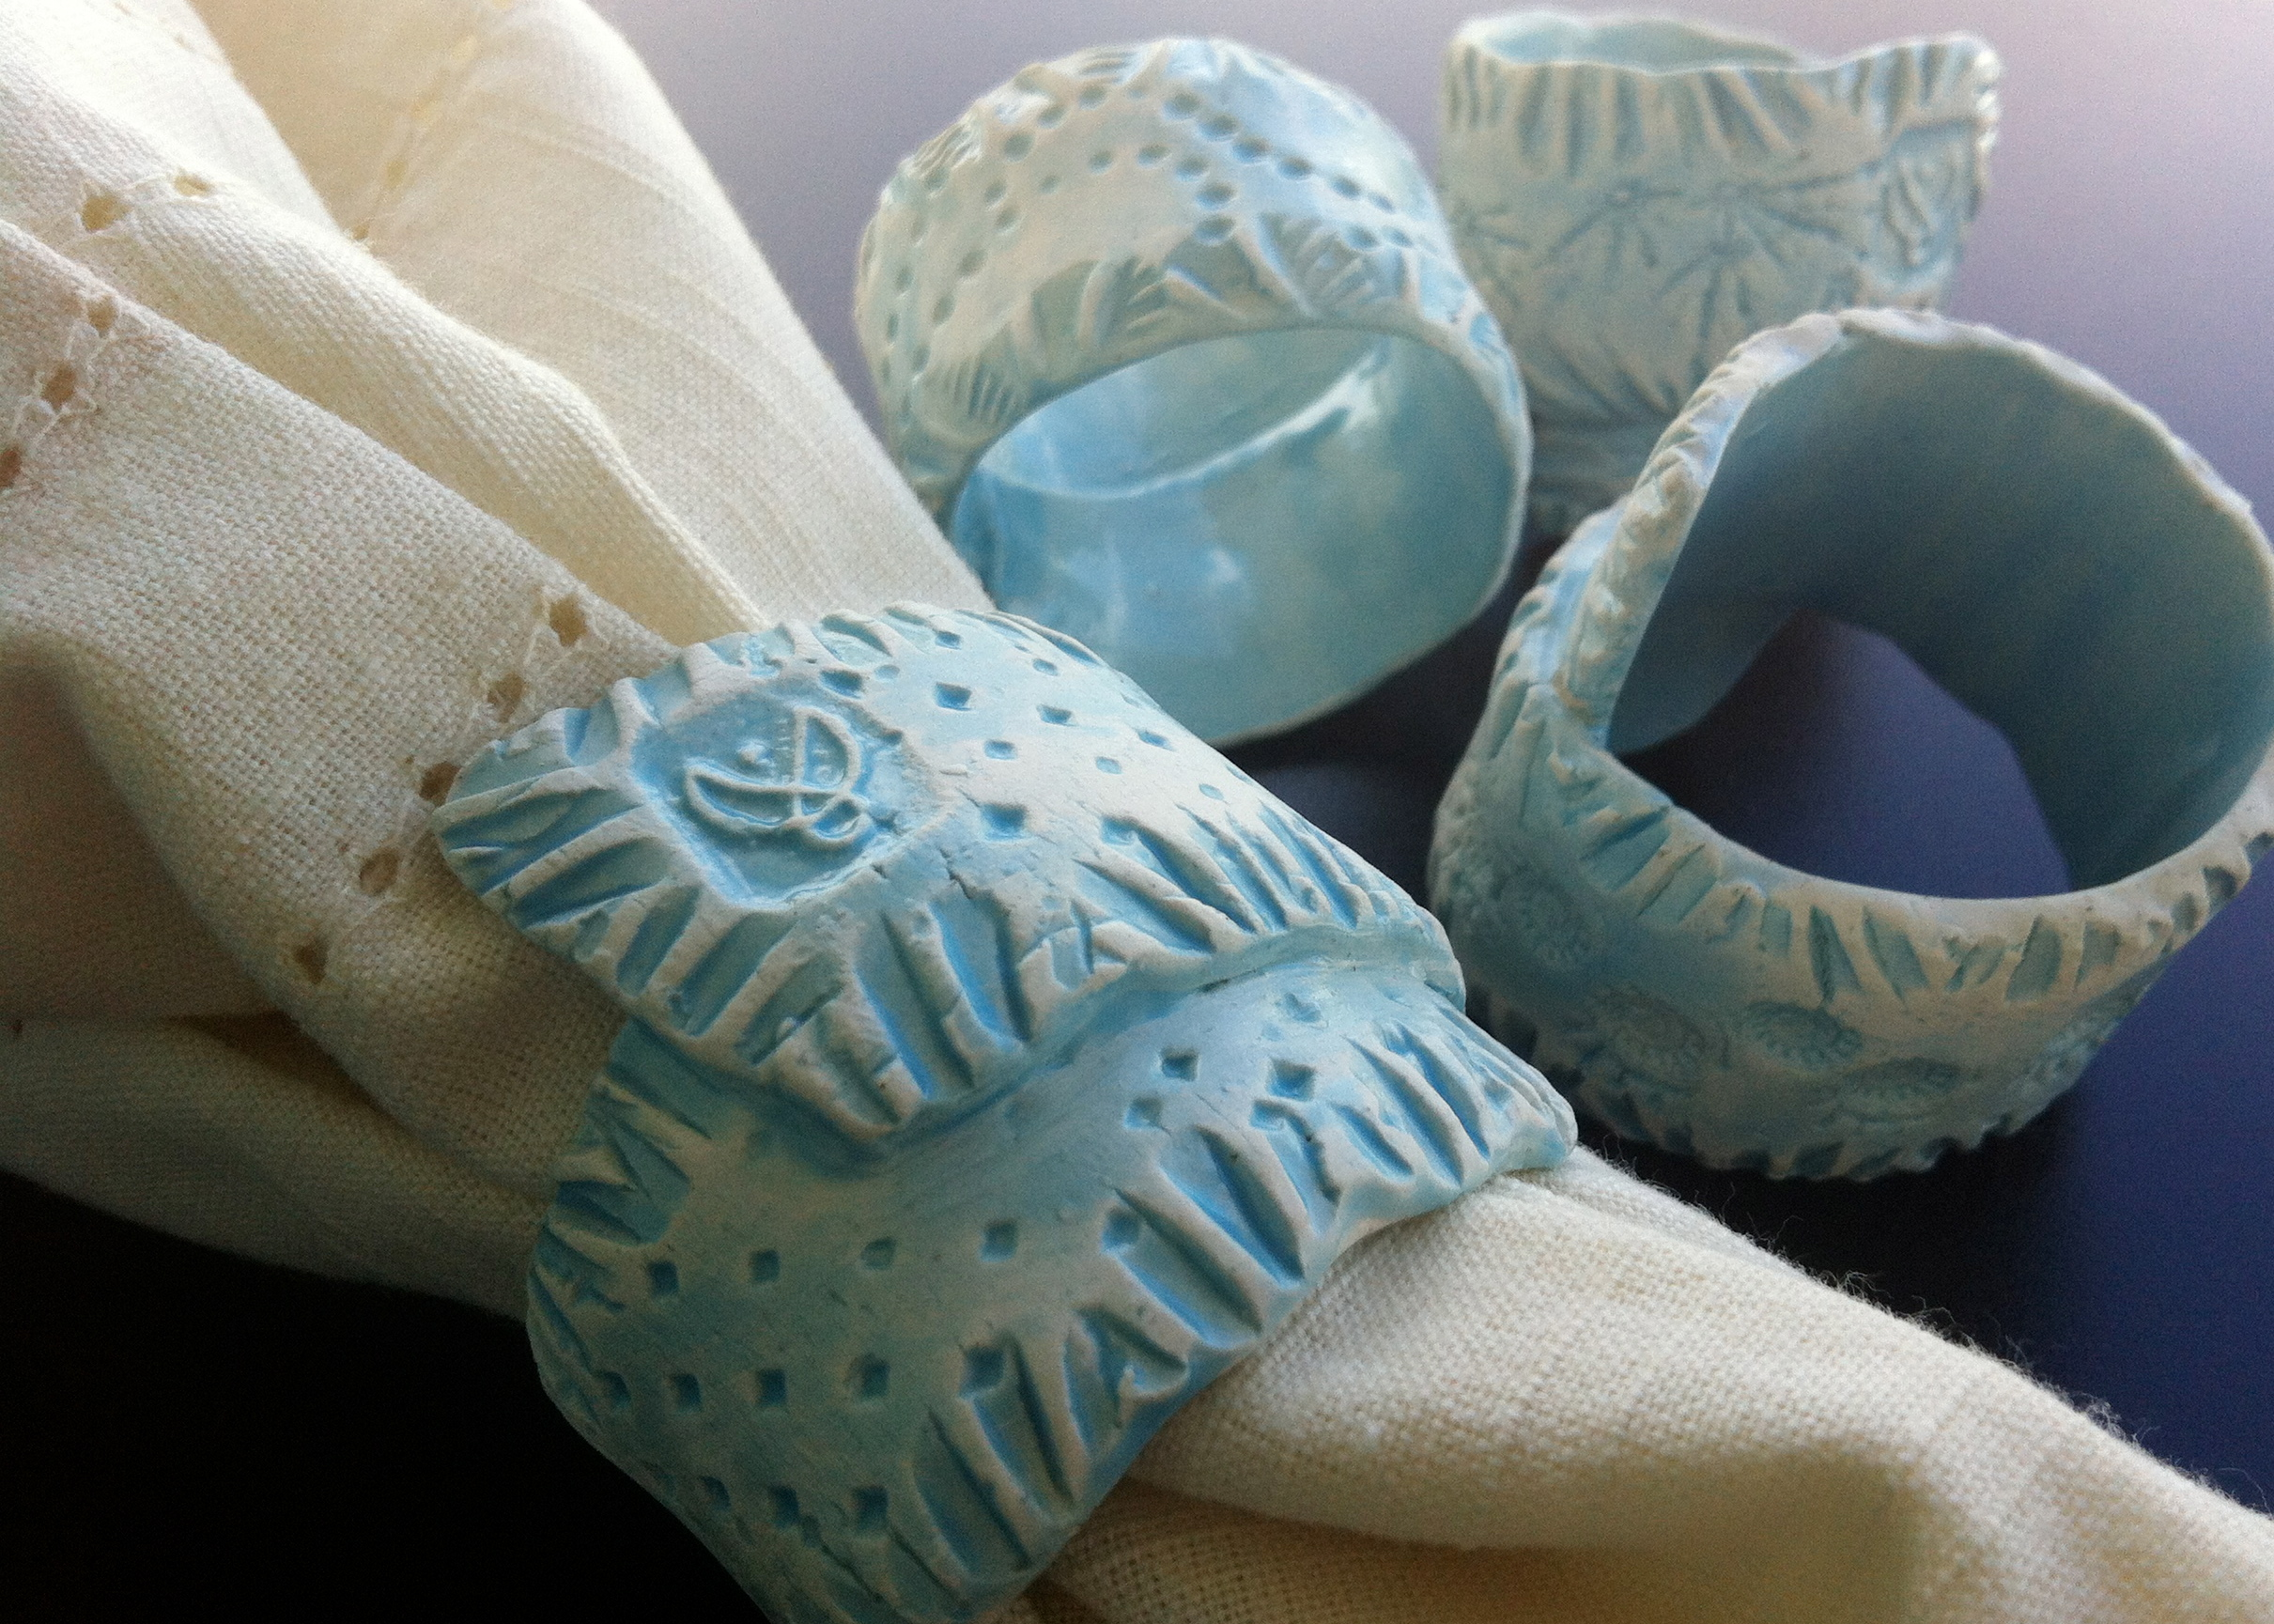 Our napkin rings are hand stamped with many layers of texture using original stamp designs made by hand in the studio, and shells from the islands of Eleuthera and Grand Bahama.